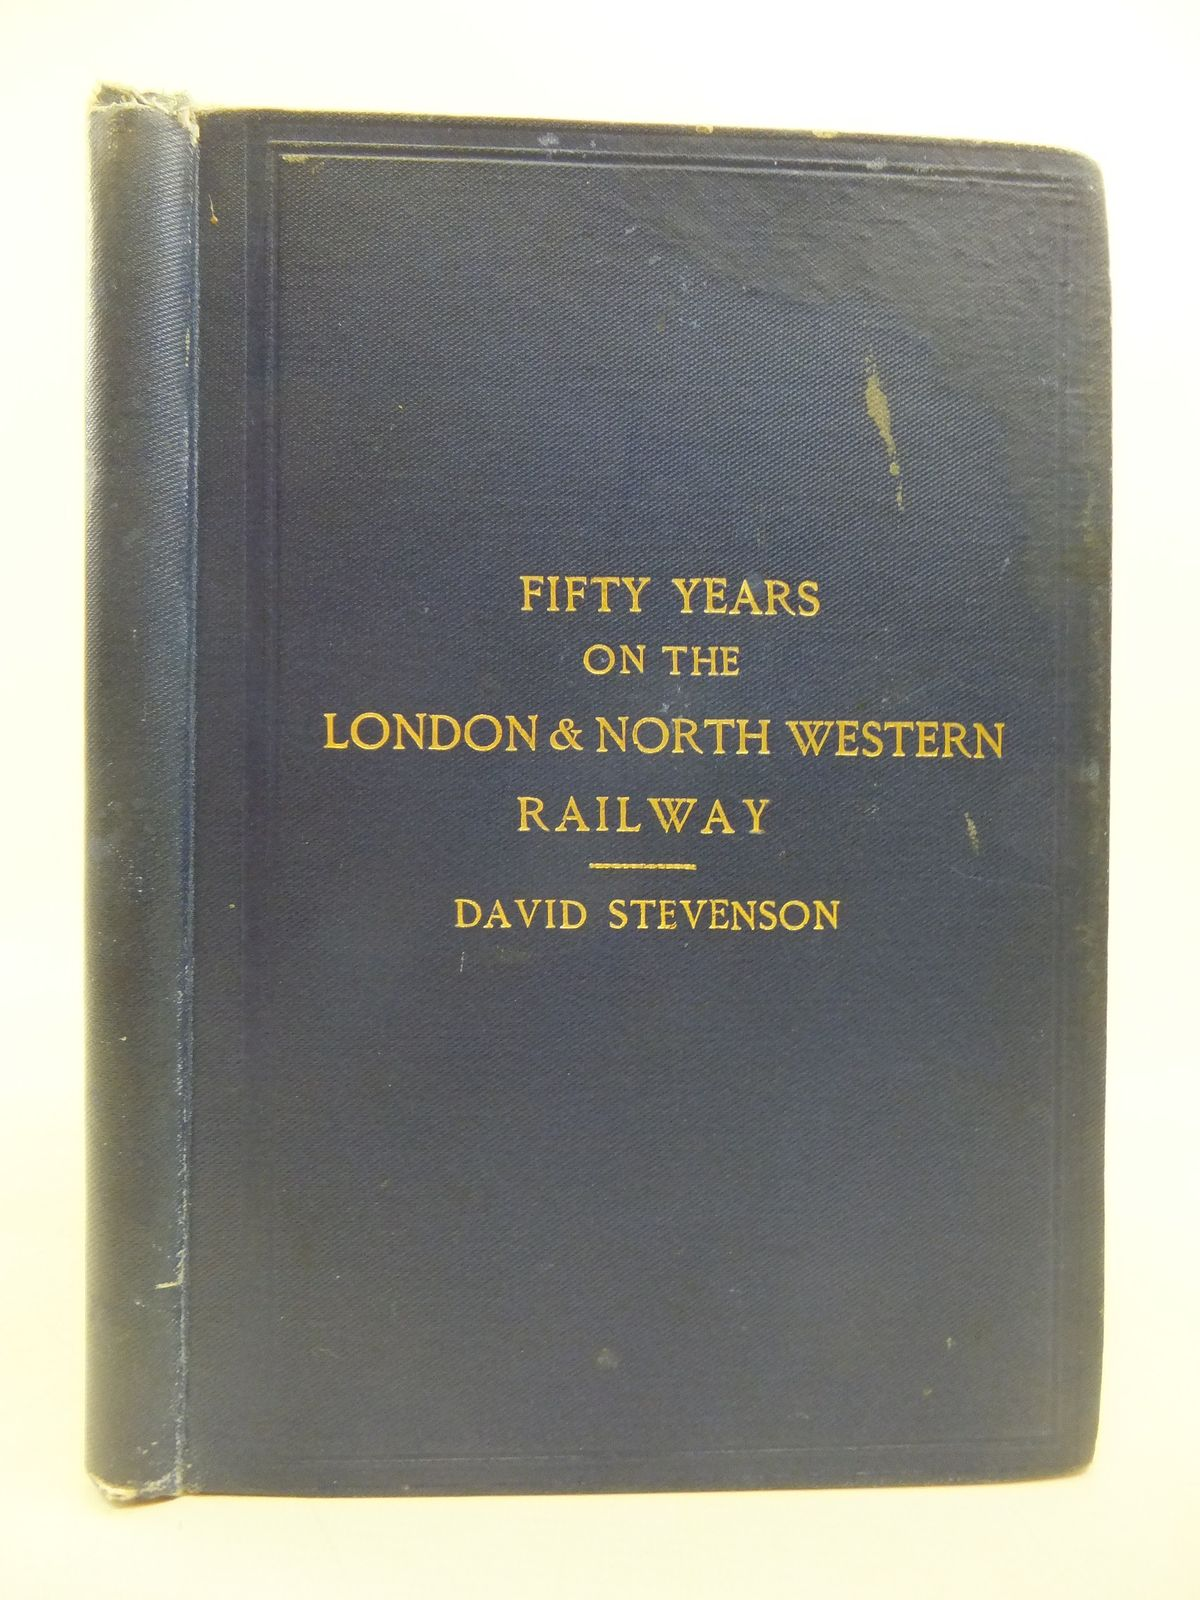 Photo of FIFTY YEARS ON THE LONDON & NORTH WESTERN RAILWAY written by Turner, Leopold<br />Stevenson, David published by McCorquodale & Co. Ltd. (STOCK CODE: 1208103)  for sale by Stella & Rose's Books